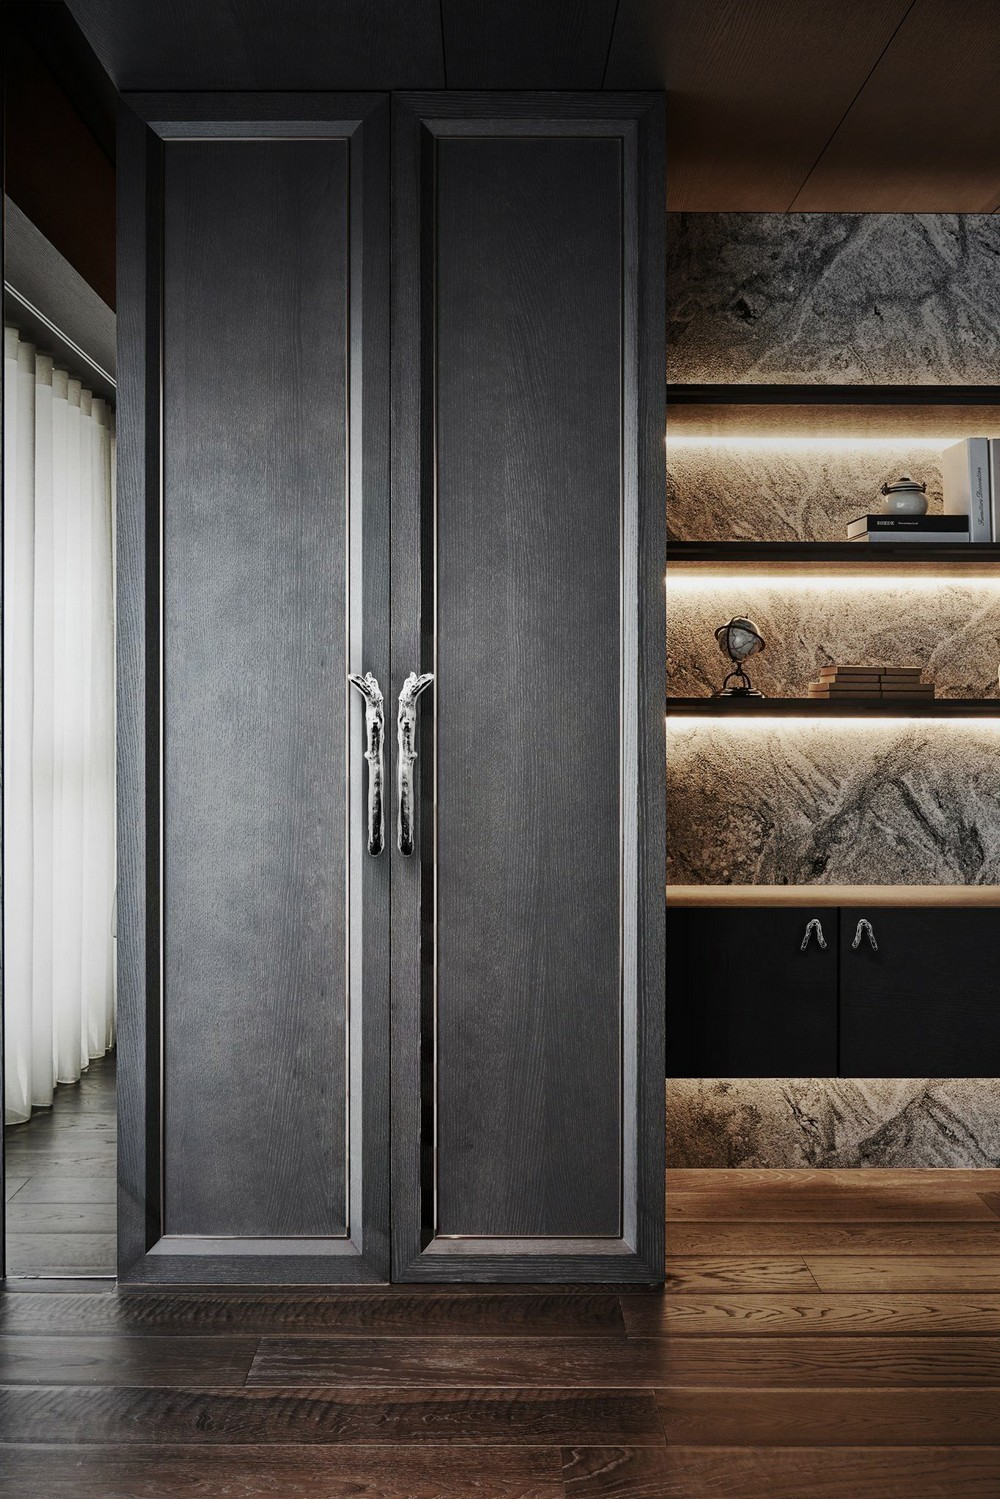 Decorative Hardware Inspirations in Trendy Hues of Ultimate Gray 10 ultimate gray Decorative Hardware Inspirations in Trendy Hues of Ultimate Gray Decorative Hardware Inspirations in Trendy Hues of Ultimate Gray 10